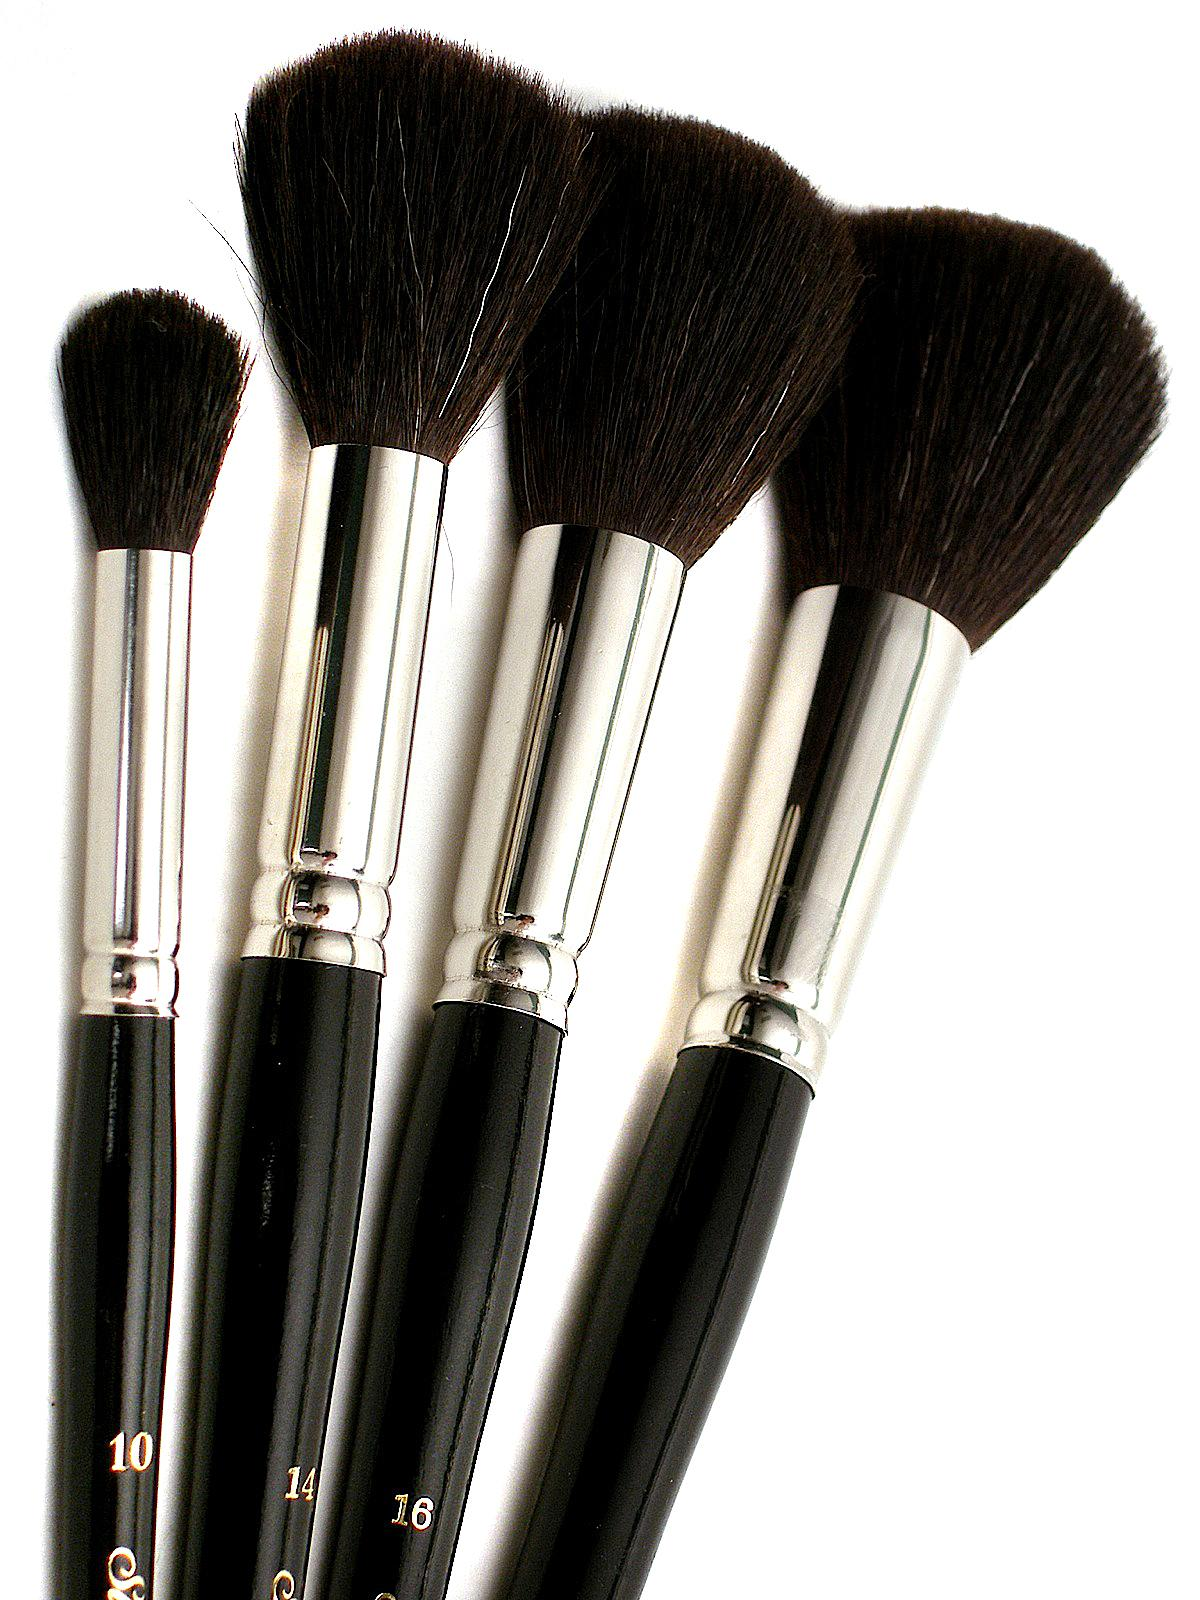 Silver Brush Black Round Oval Mop Brushes MisterArtcom